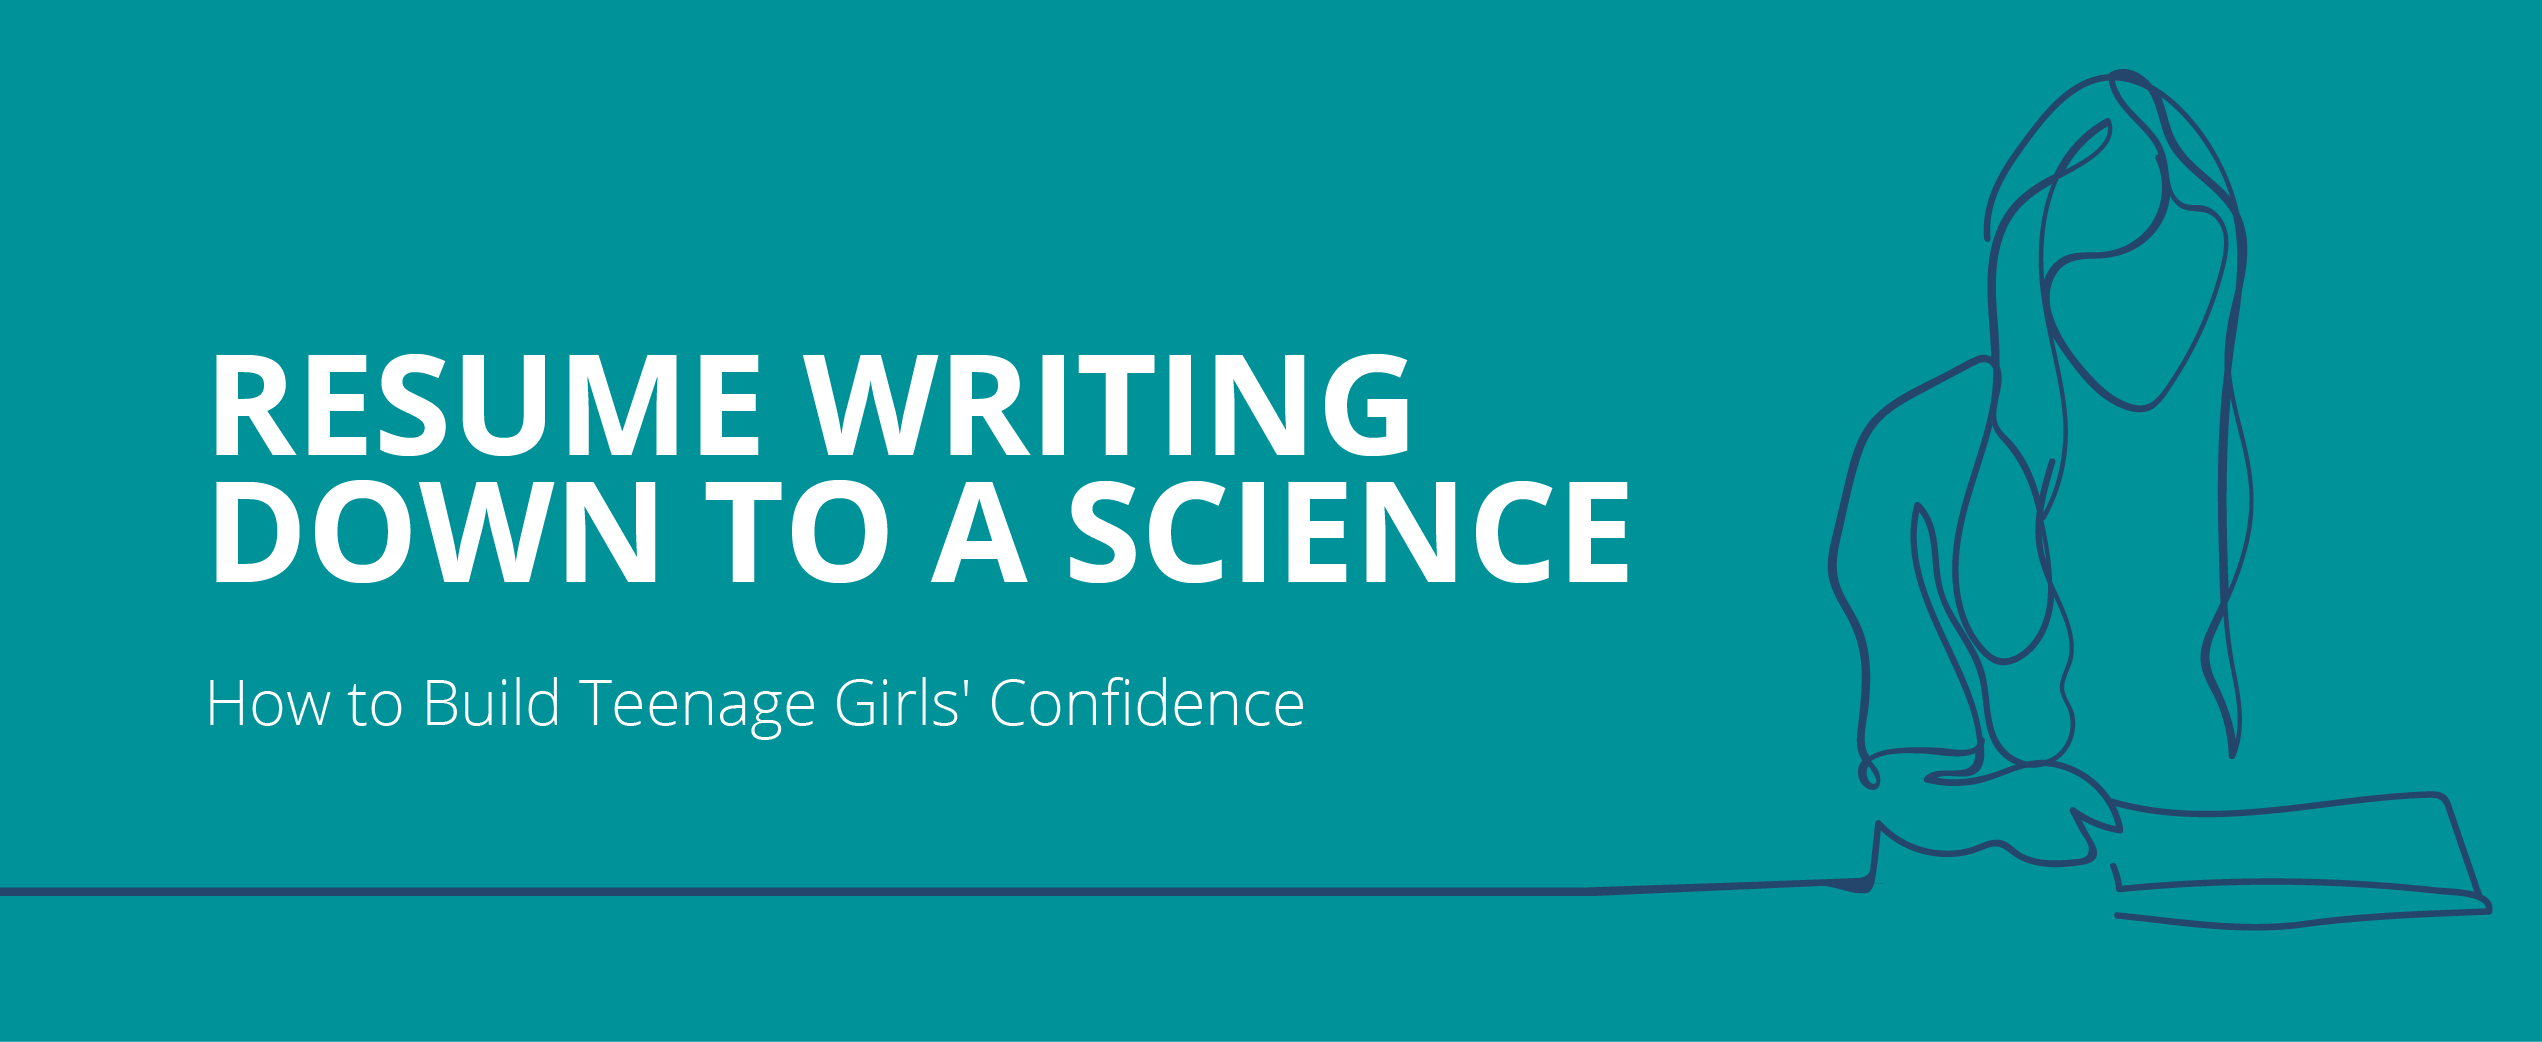 Resume Writing Down to a Science: How to Build Teenage Girls' Confidence